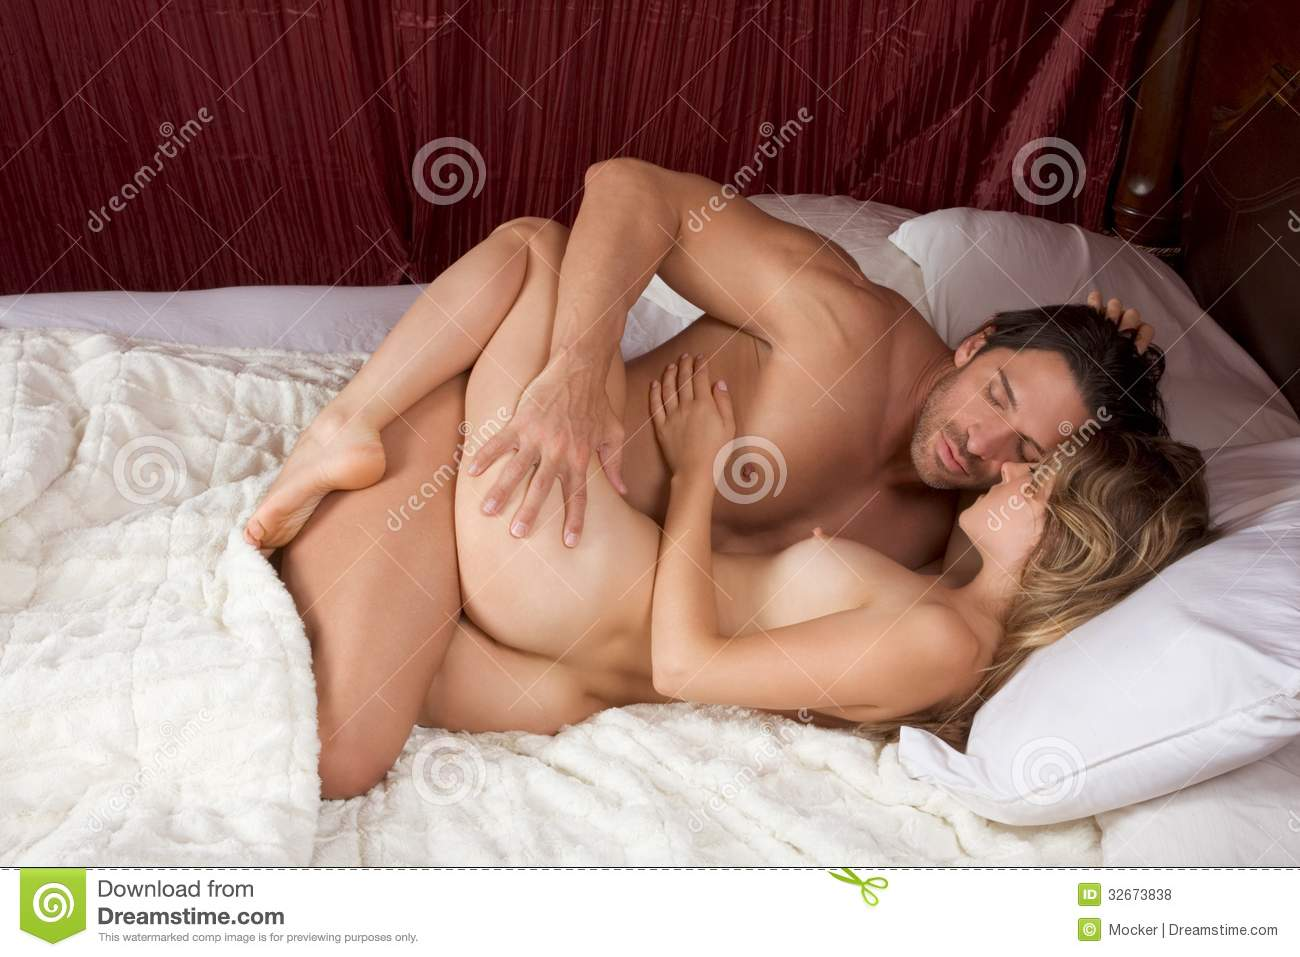 Nude couples having sex naked